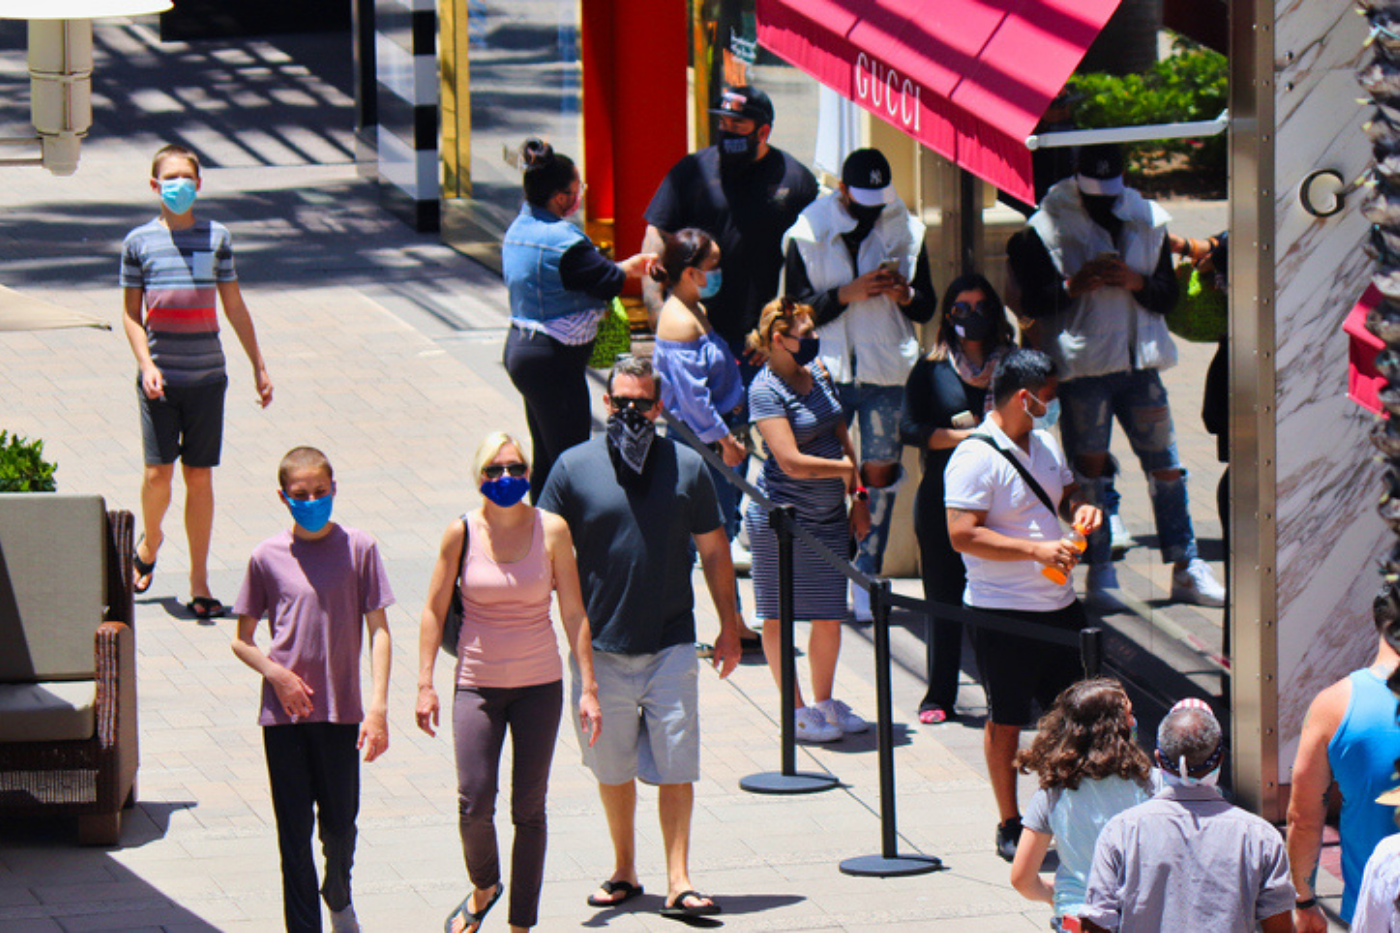 """Matt Barreto in UCLA Newsroom: """"UCLA-led national survey shows attitudes about politics and policy vary among racial groups"""""""